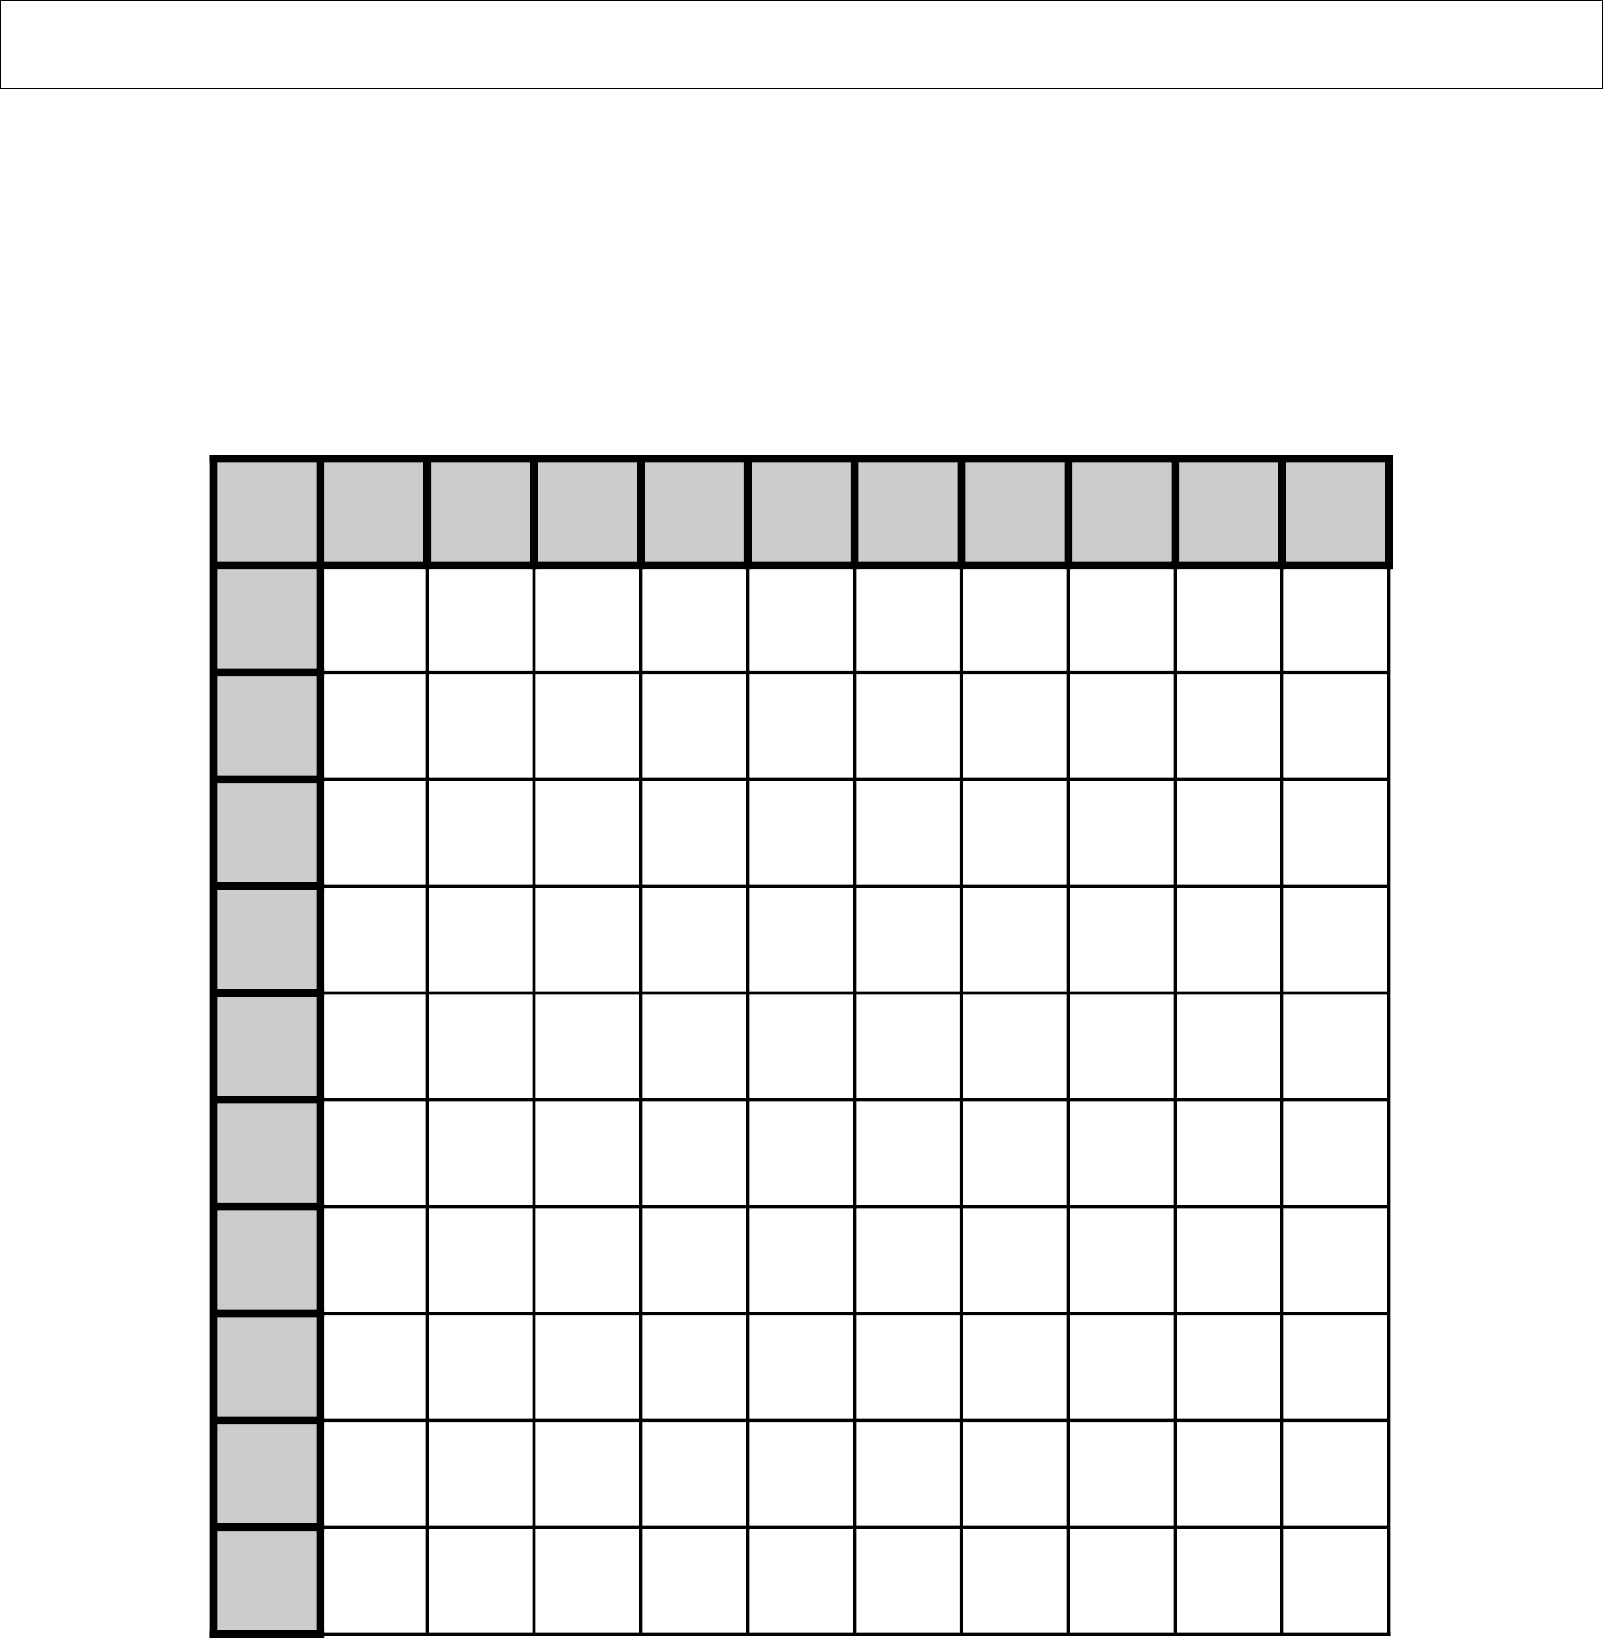 Worksheet multiplication table worksheet blank grass fedjp worksheet multiplication table worksheet blank 100 multiplication drill sheets 1 12 mad minute blank grid greater geenschuldenfo Gallery